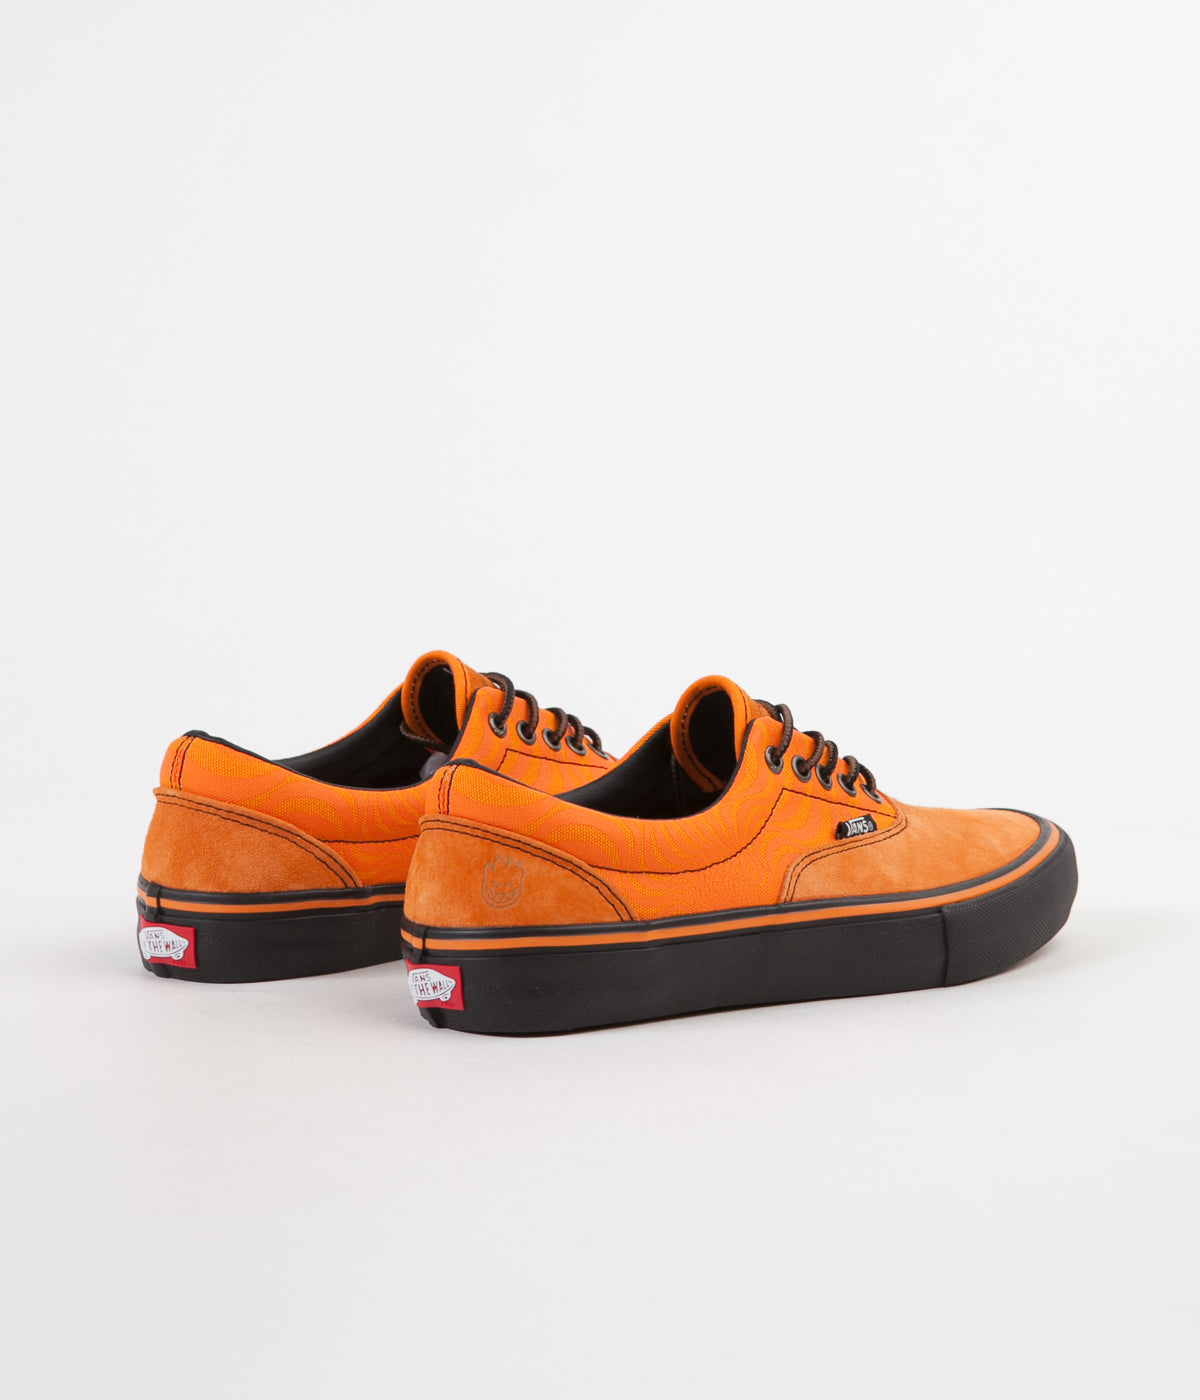 52a6d7ecb9ba ... Vans x Spitfire Era Pro Shoes - Cardiel   Orange ...